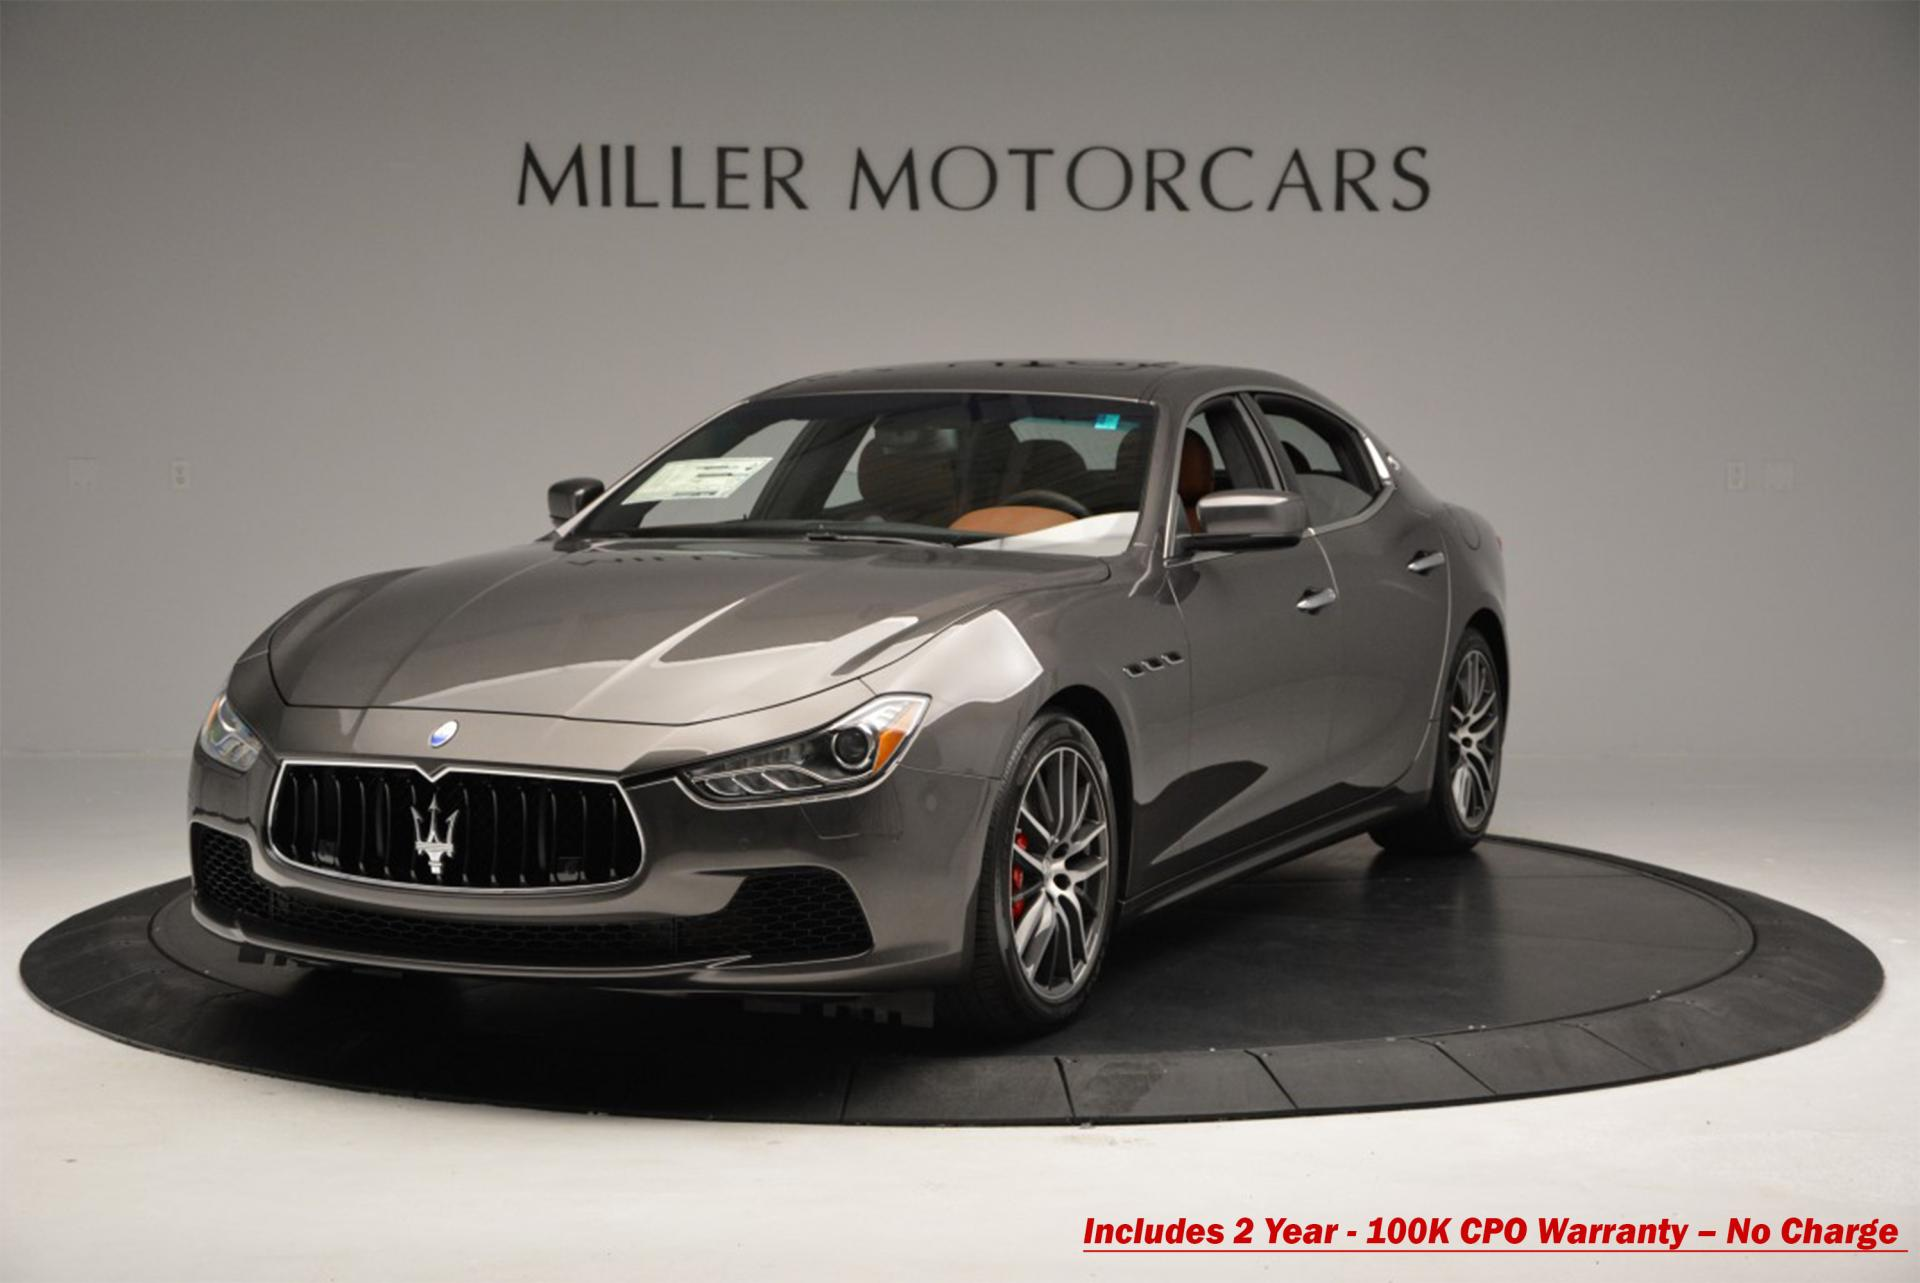 Used 2016 Maserati Ghibli S Q4 for sale Sold at Pagani of Greenwich in Greenwich CT 06830 1